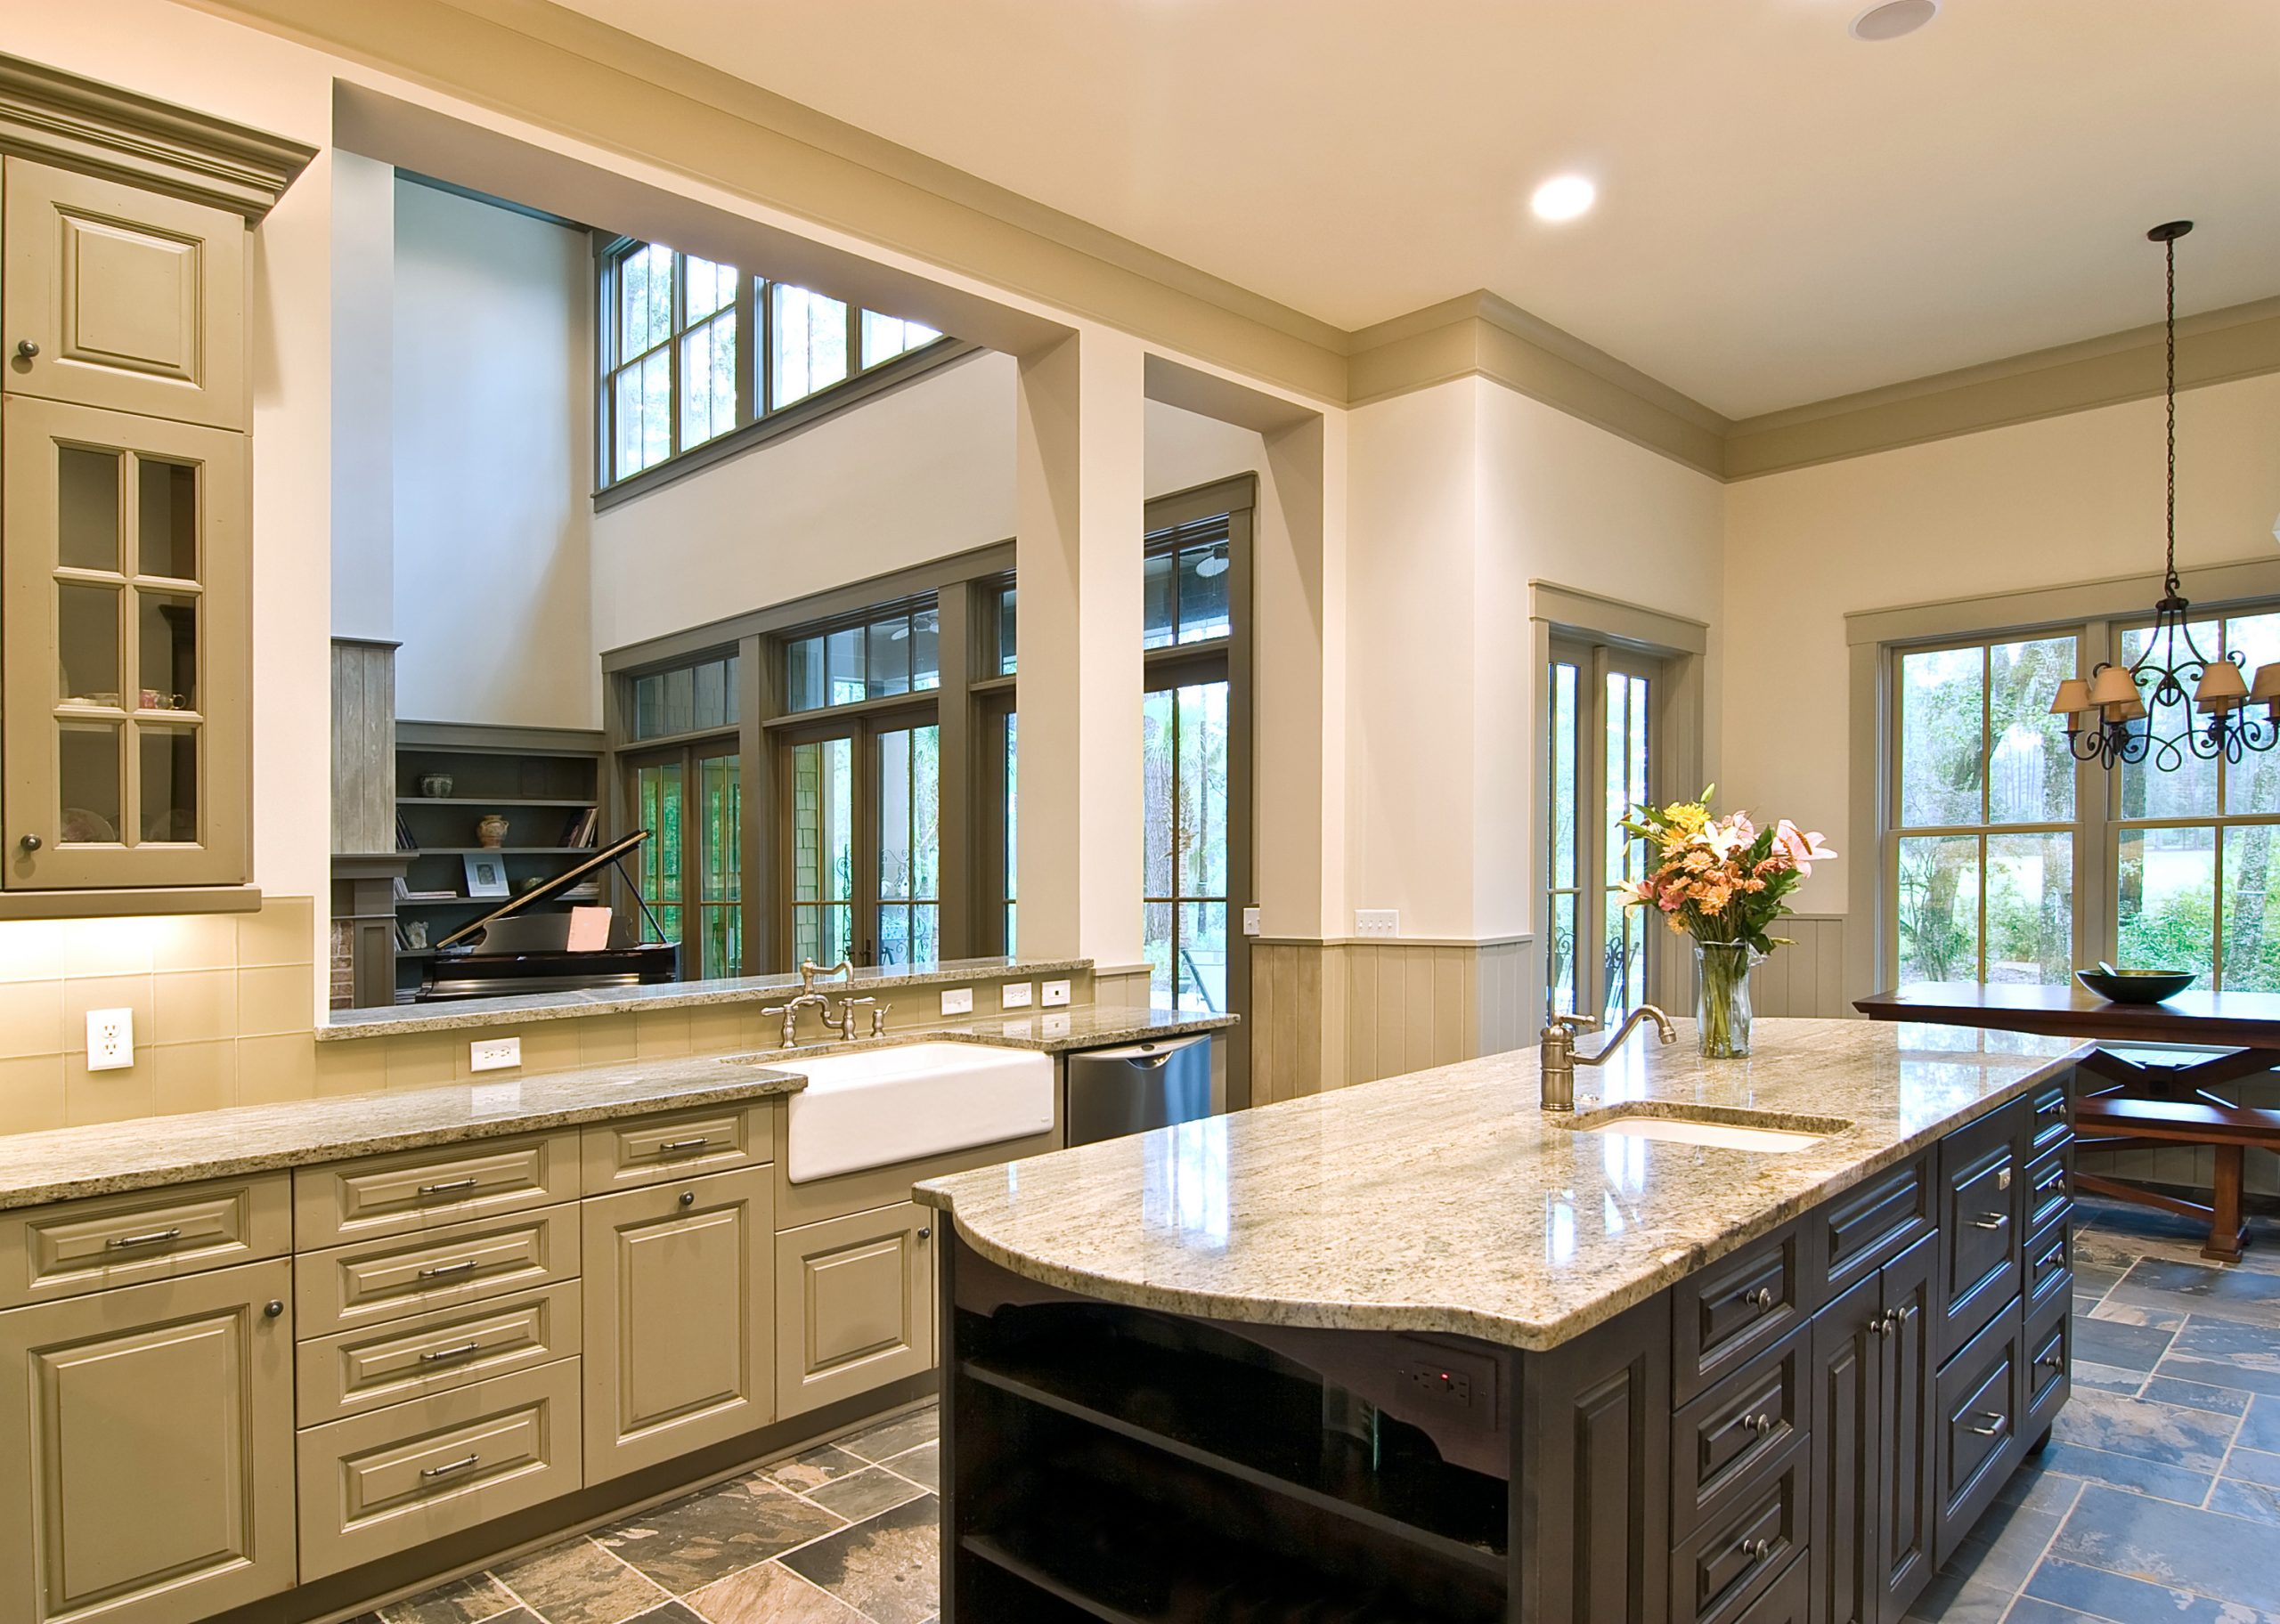 Kennett Square, PA Contractor Services